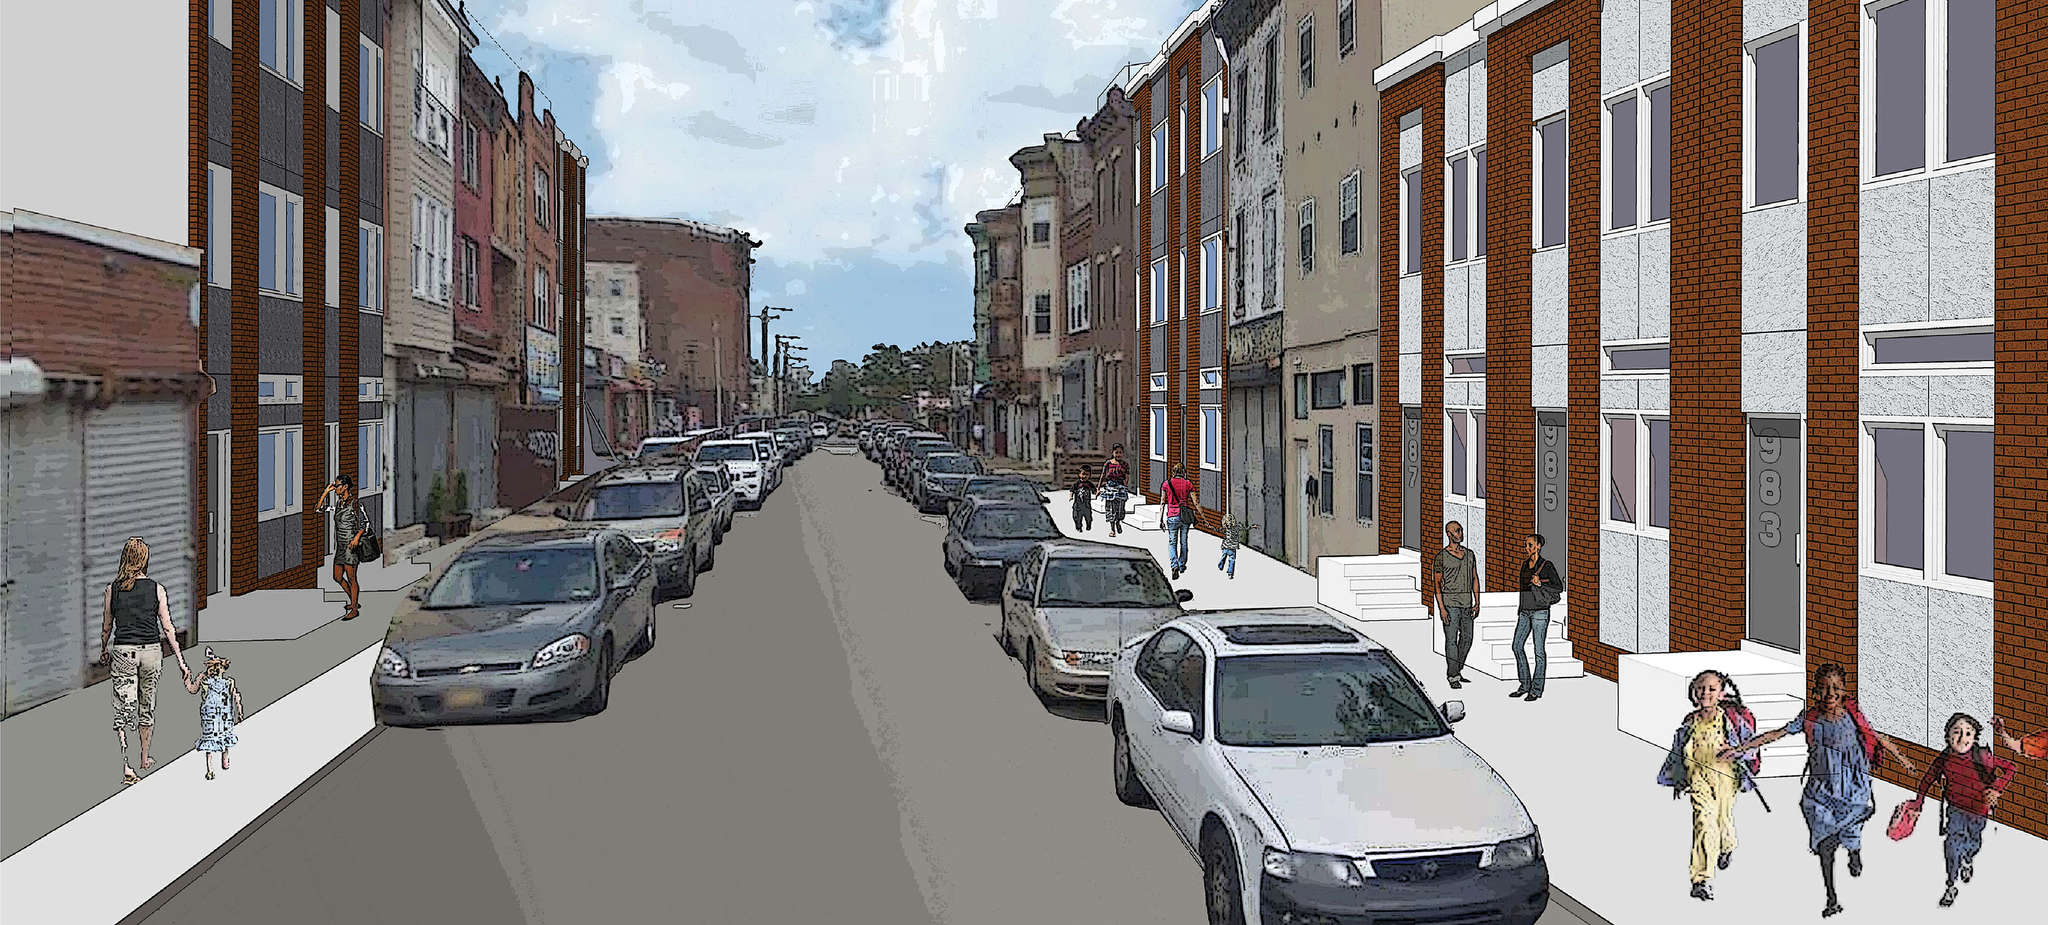 The 13 units of housing that will be built on North Marshall Street are depicted in an artist´s rendering.